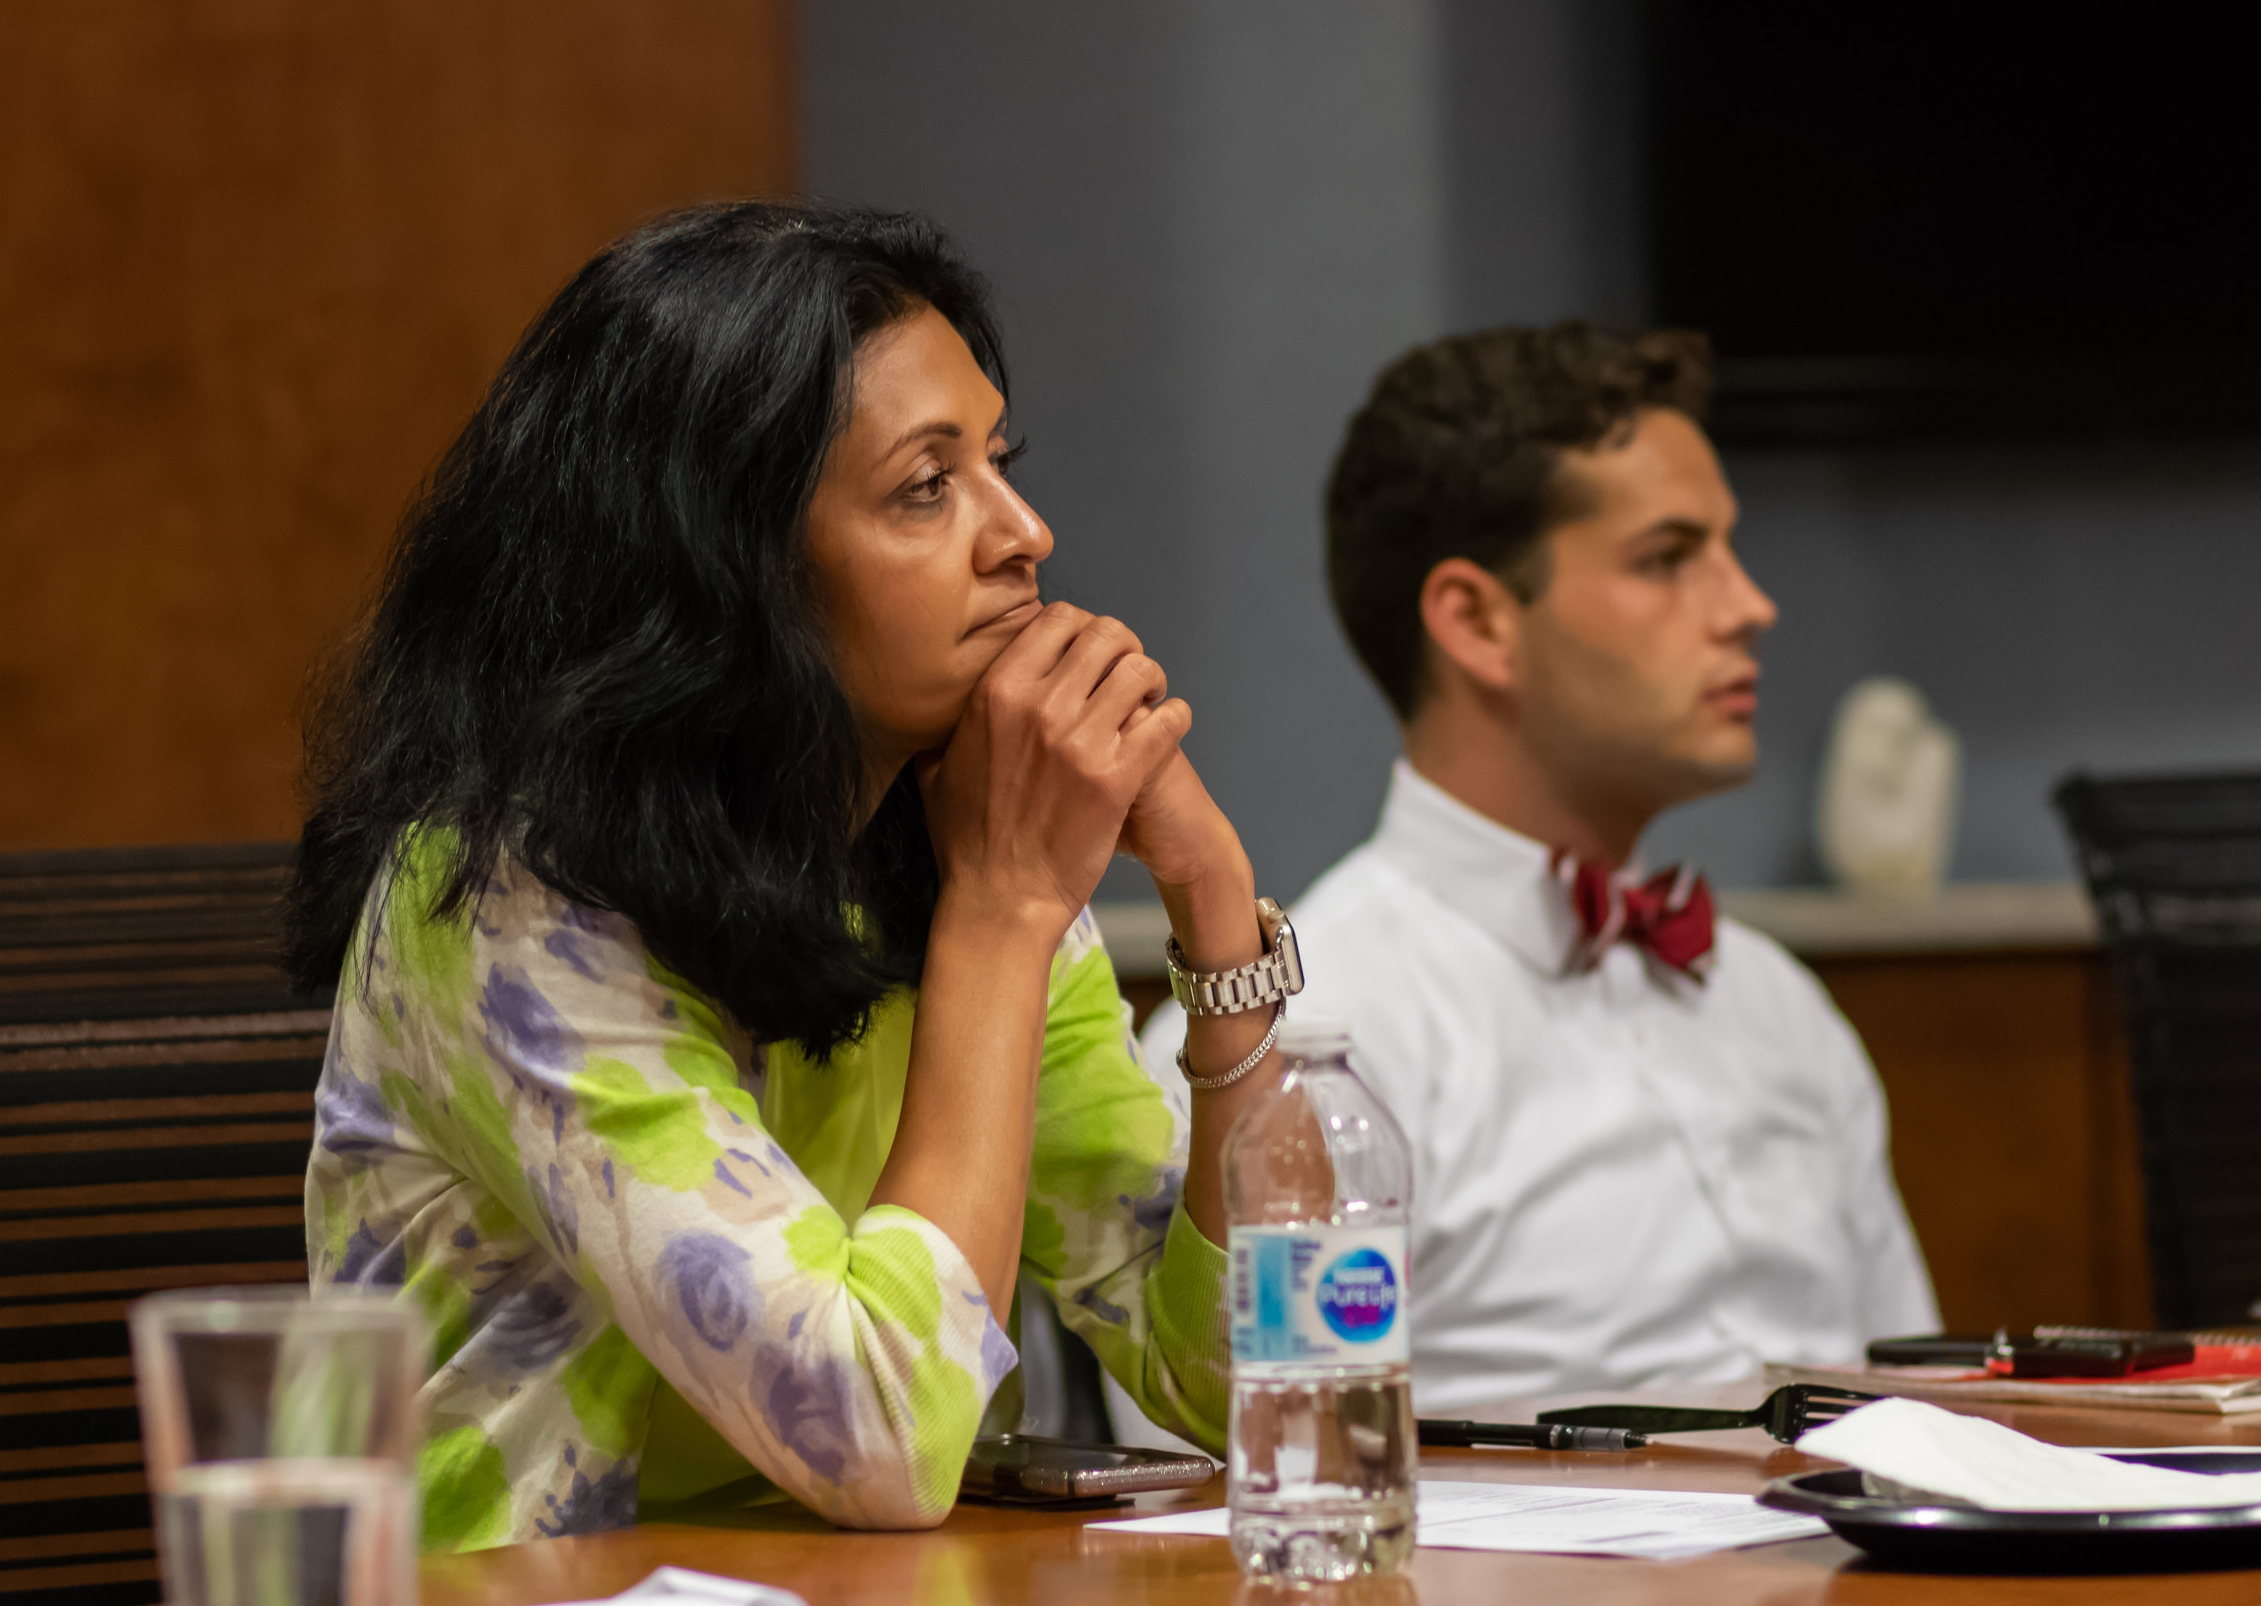 (Left) Dr. Anita Somani, Immediate Past President of the CMA, (Right) Douglas Weaver, MD Candidate, The Ohio State University College of Medicine President